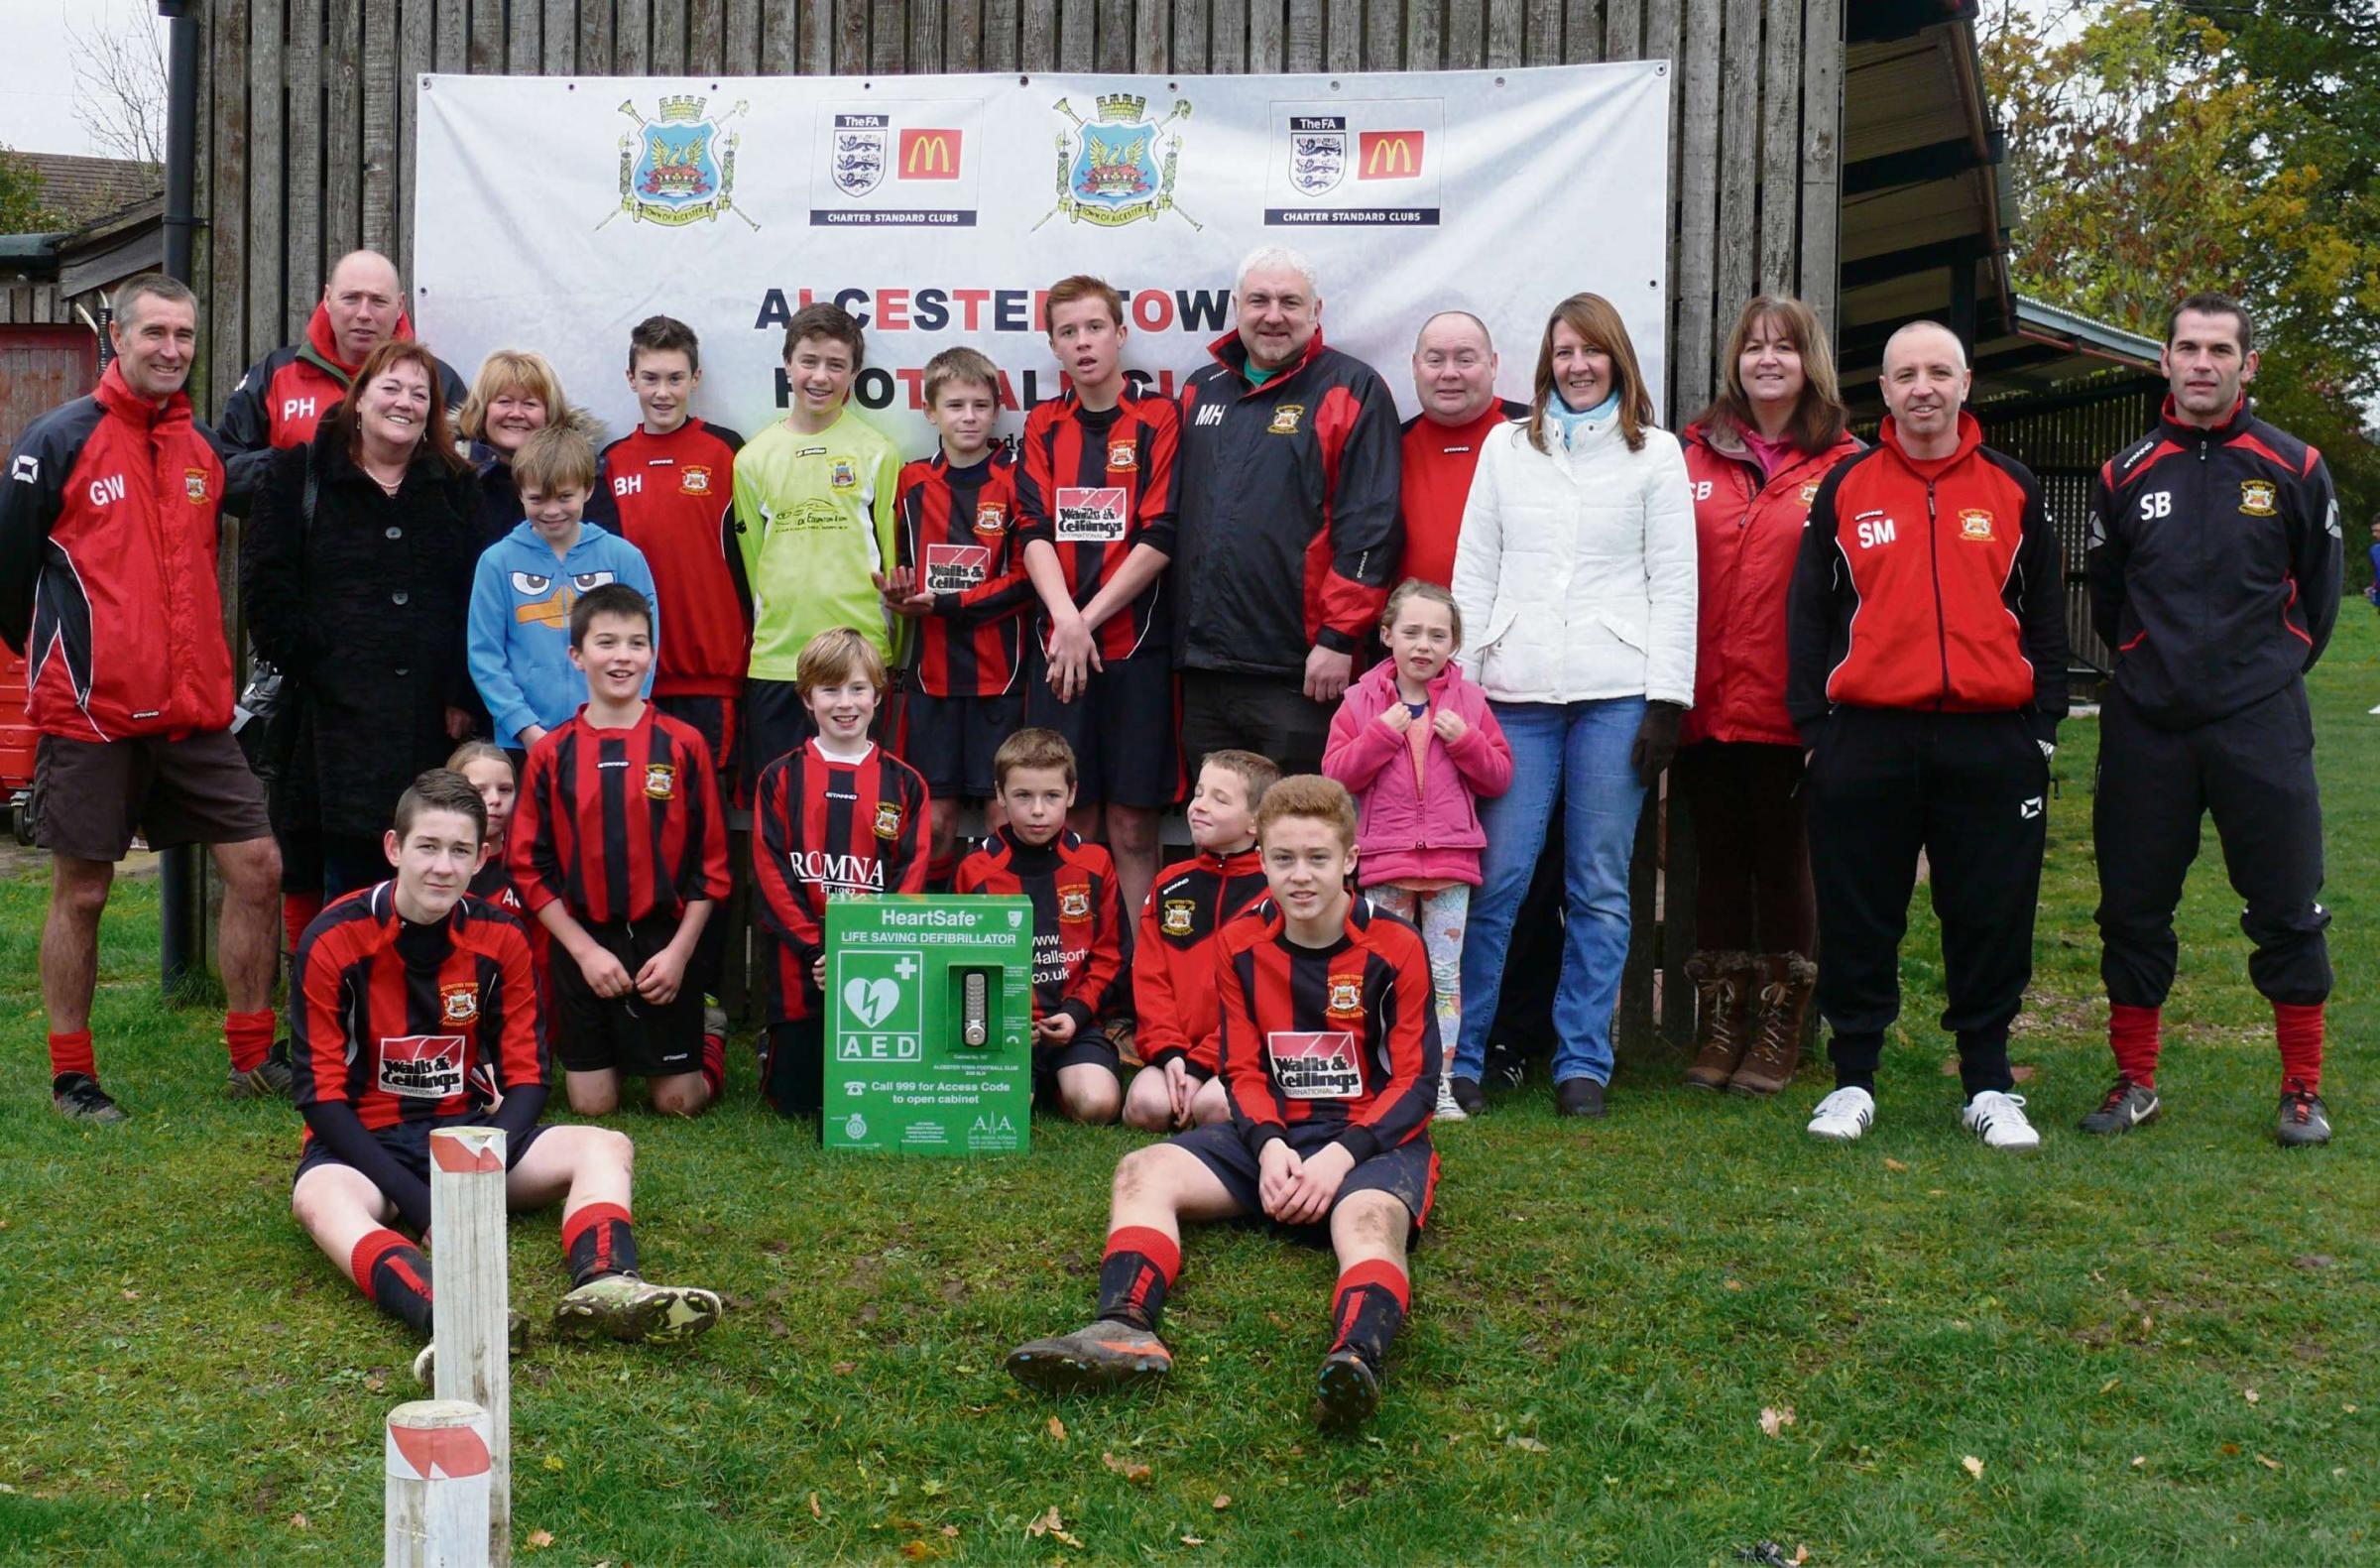 Alcester Heartsafe campaigners Alison Brown and Ann Delany (third and fourth from left) with Alcester Town Football Club and its new defibrill